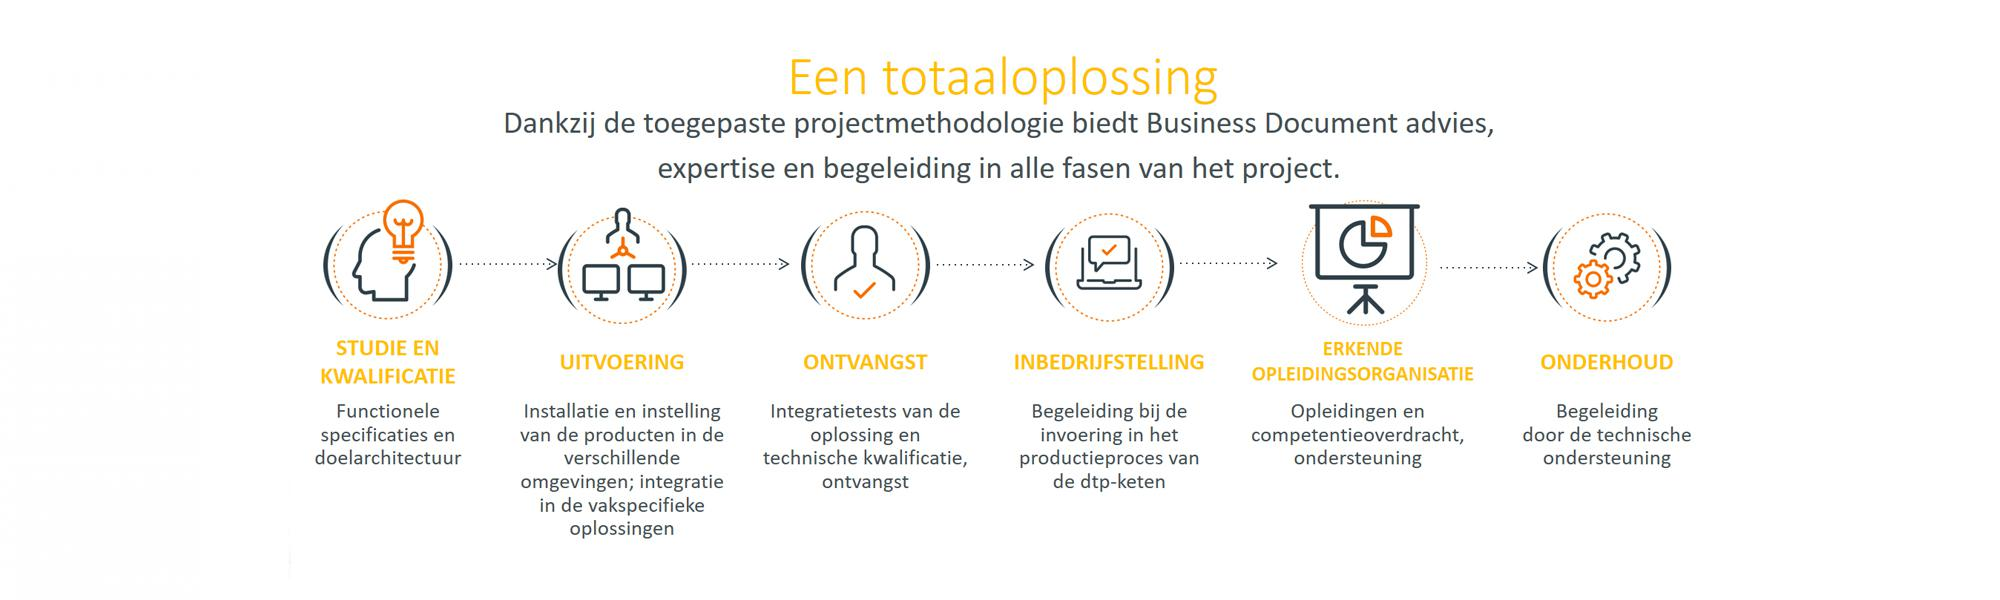 Een totaaloplossing